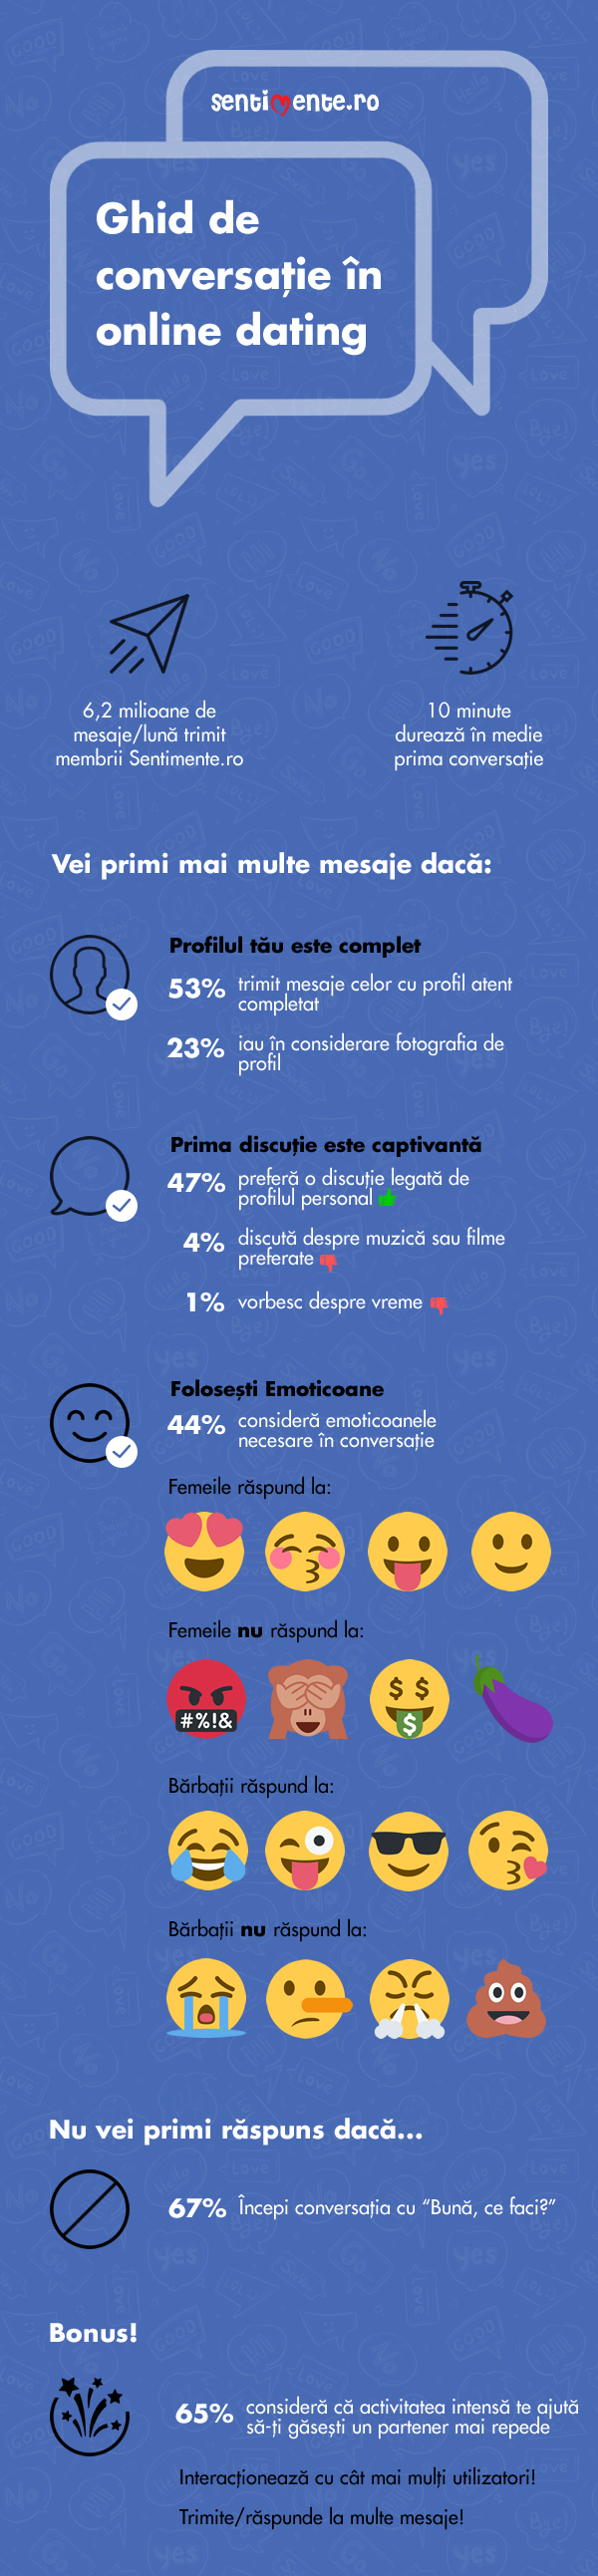 infografic-ghid de conversatie in dating